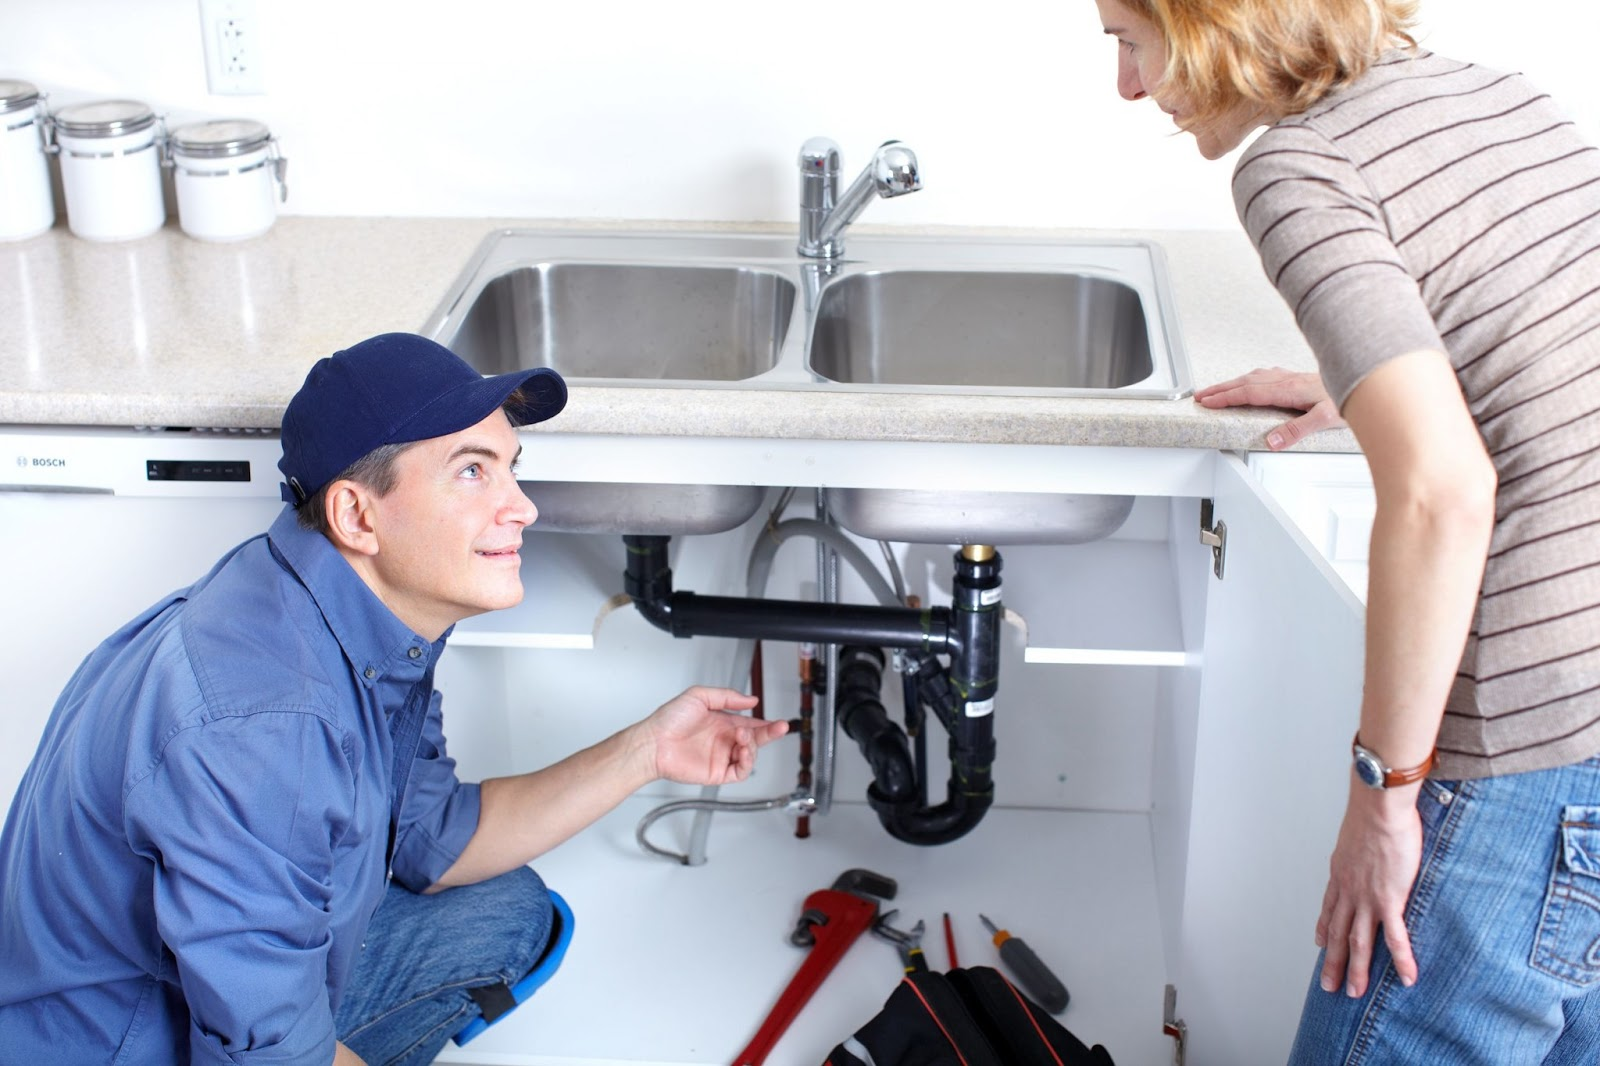 What To Do When You Have Plumbing Problems